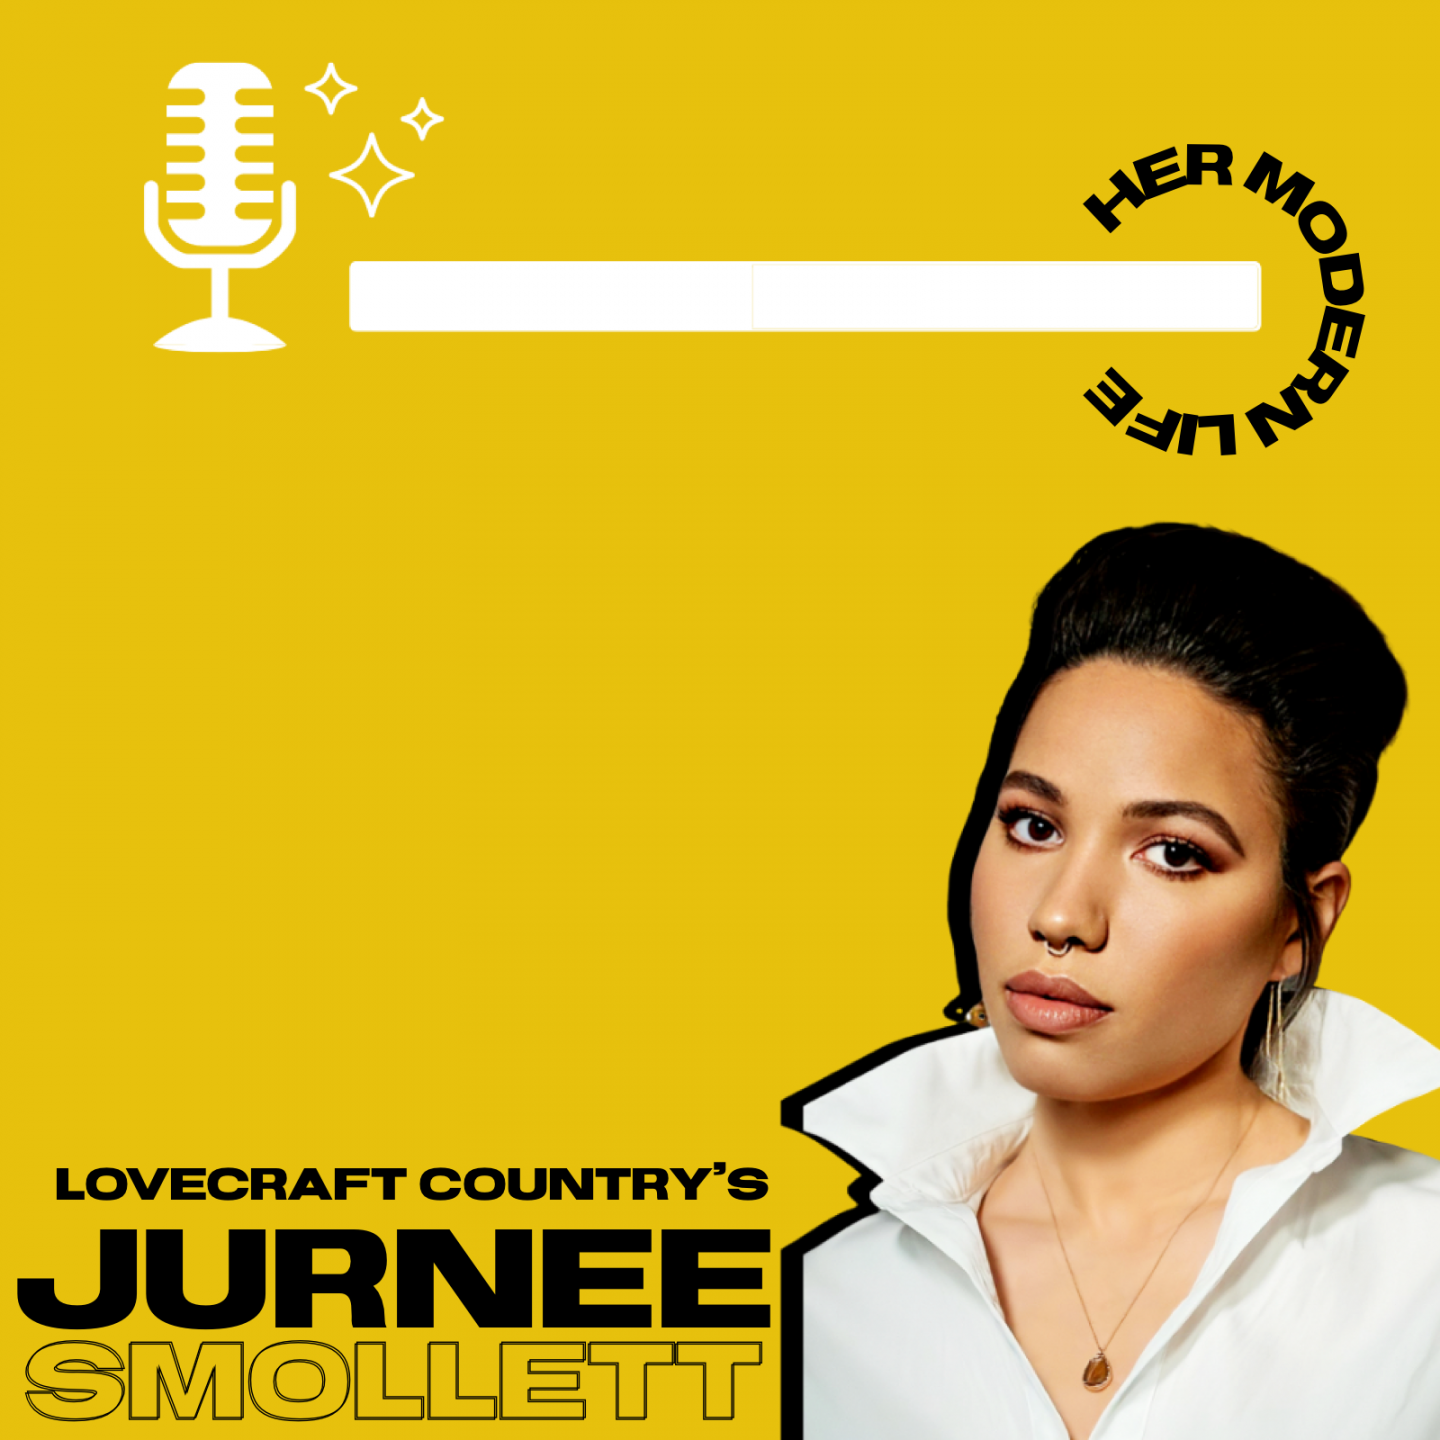 Lovecraft Country Interviews: Jurnee Smollett